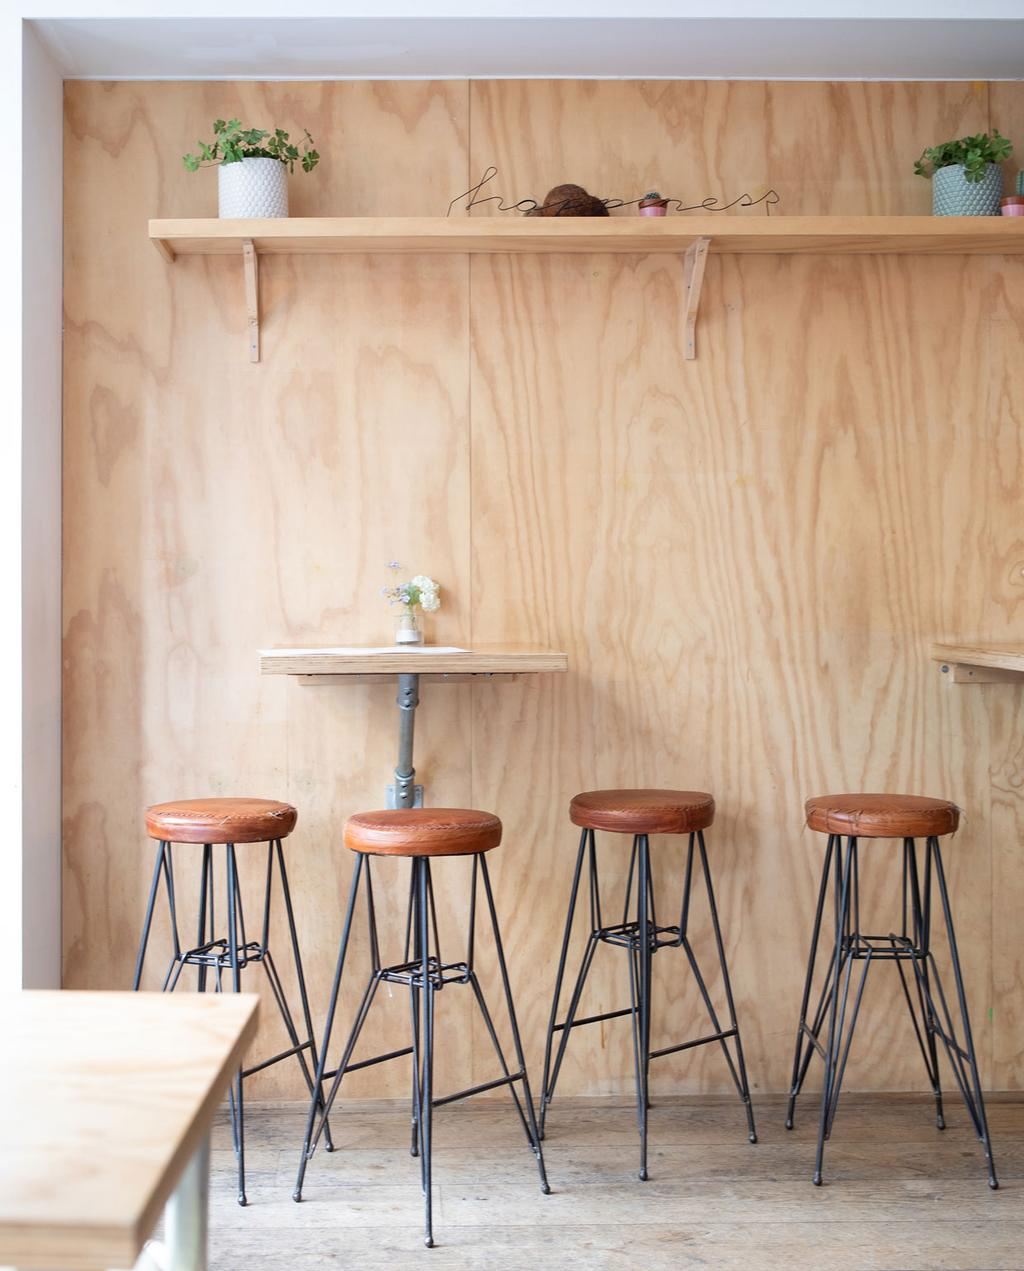 vtwonen 10-2019 | Citytrip Eindhoven The Happiness Cafe houte wand